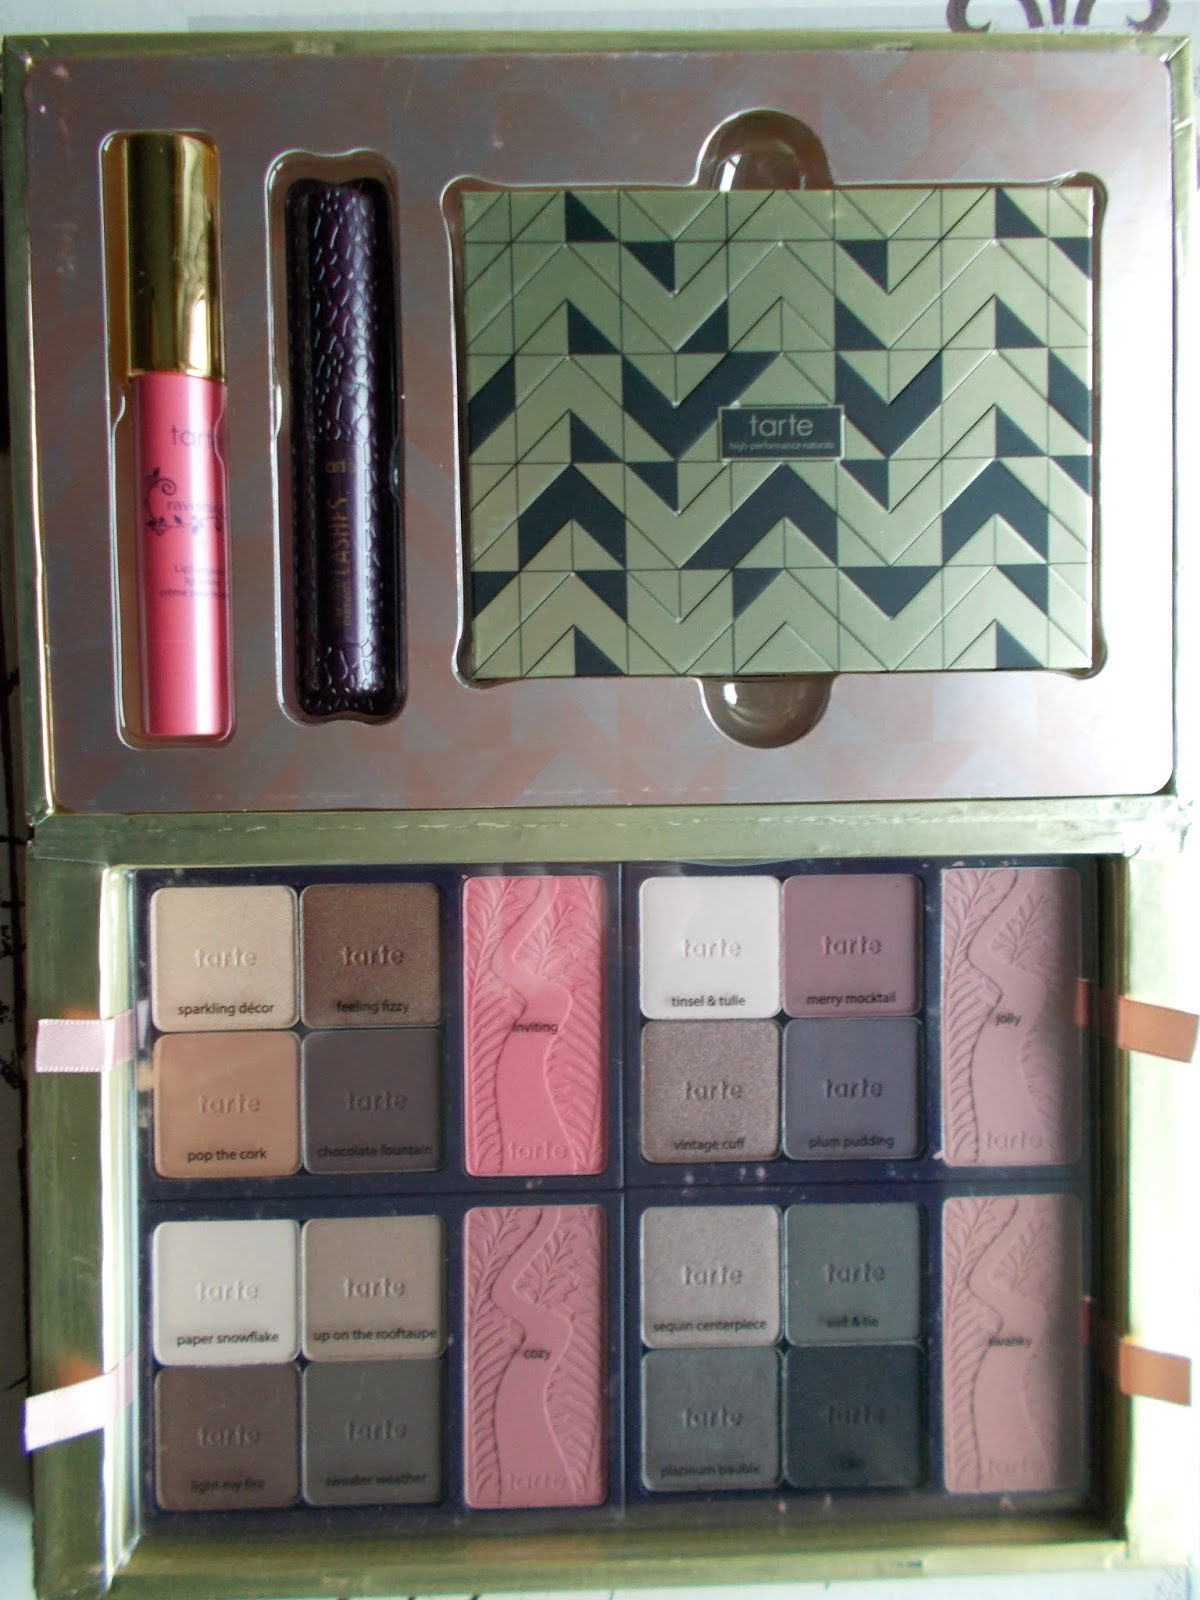 Tarte Holiday Blockbuster set review